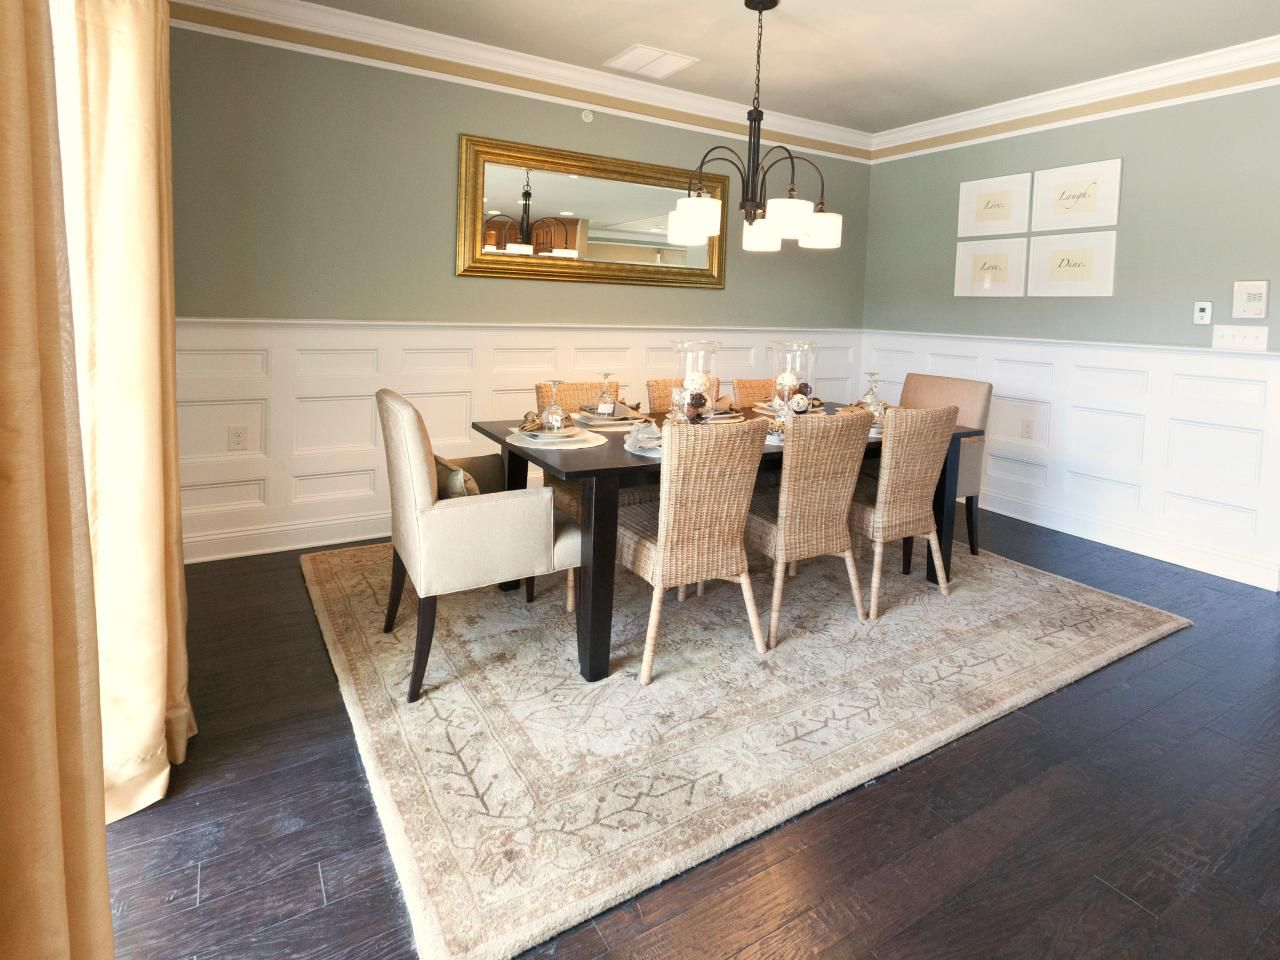 Transitional dining room - Crown Molding And Wainscoting In Bright White Lighten This Transitional Dining Room And Add An